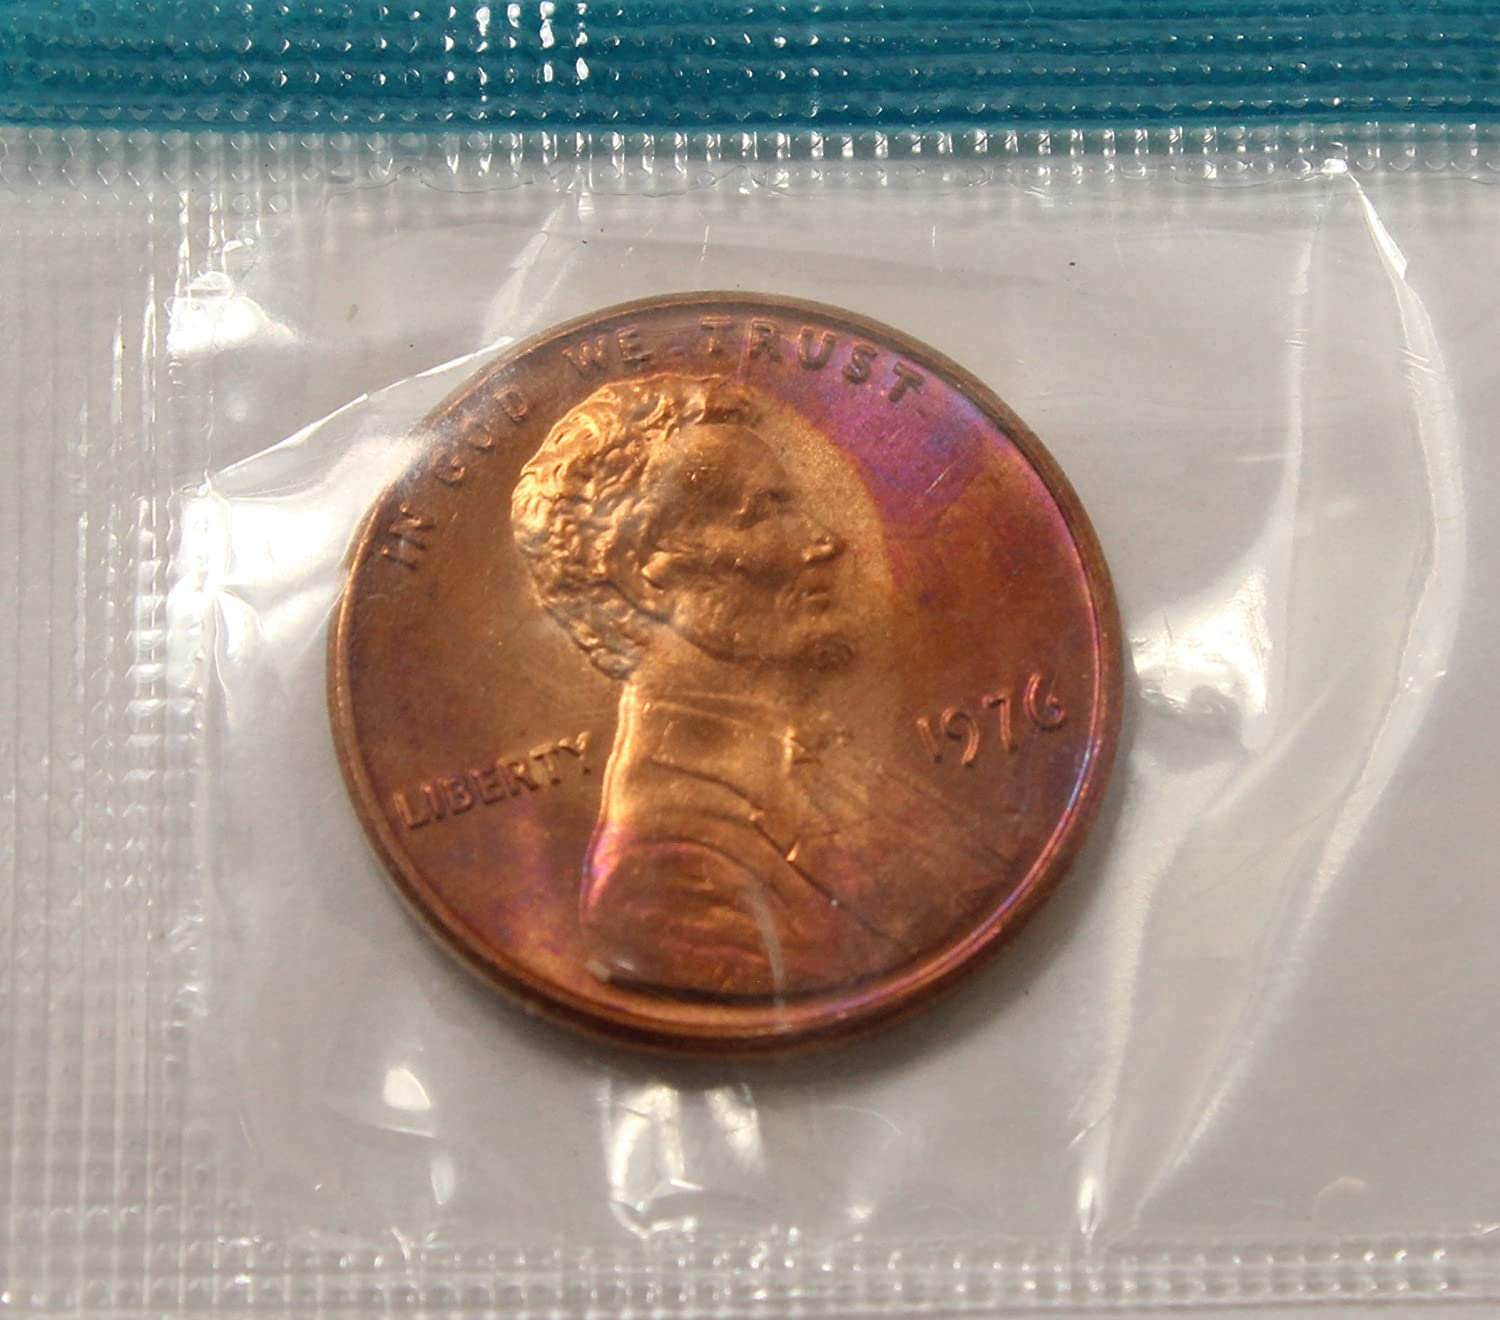 1996 P  Lincoln Memorial Penny ~ Uncirculated Coin in Mint Cello from Mint Set